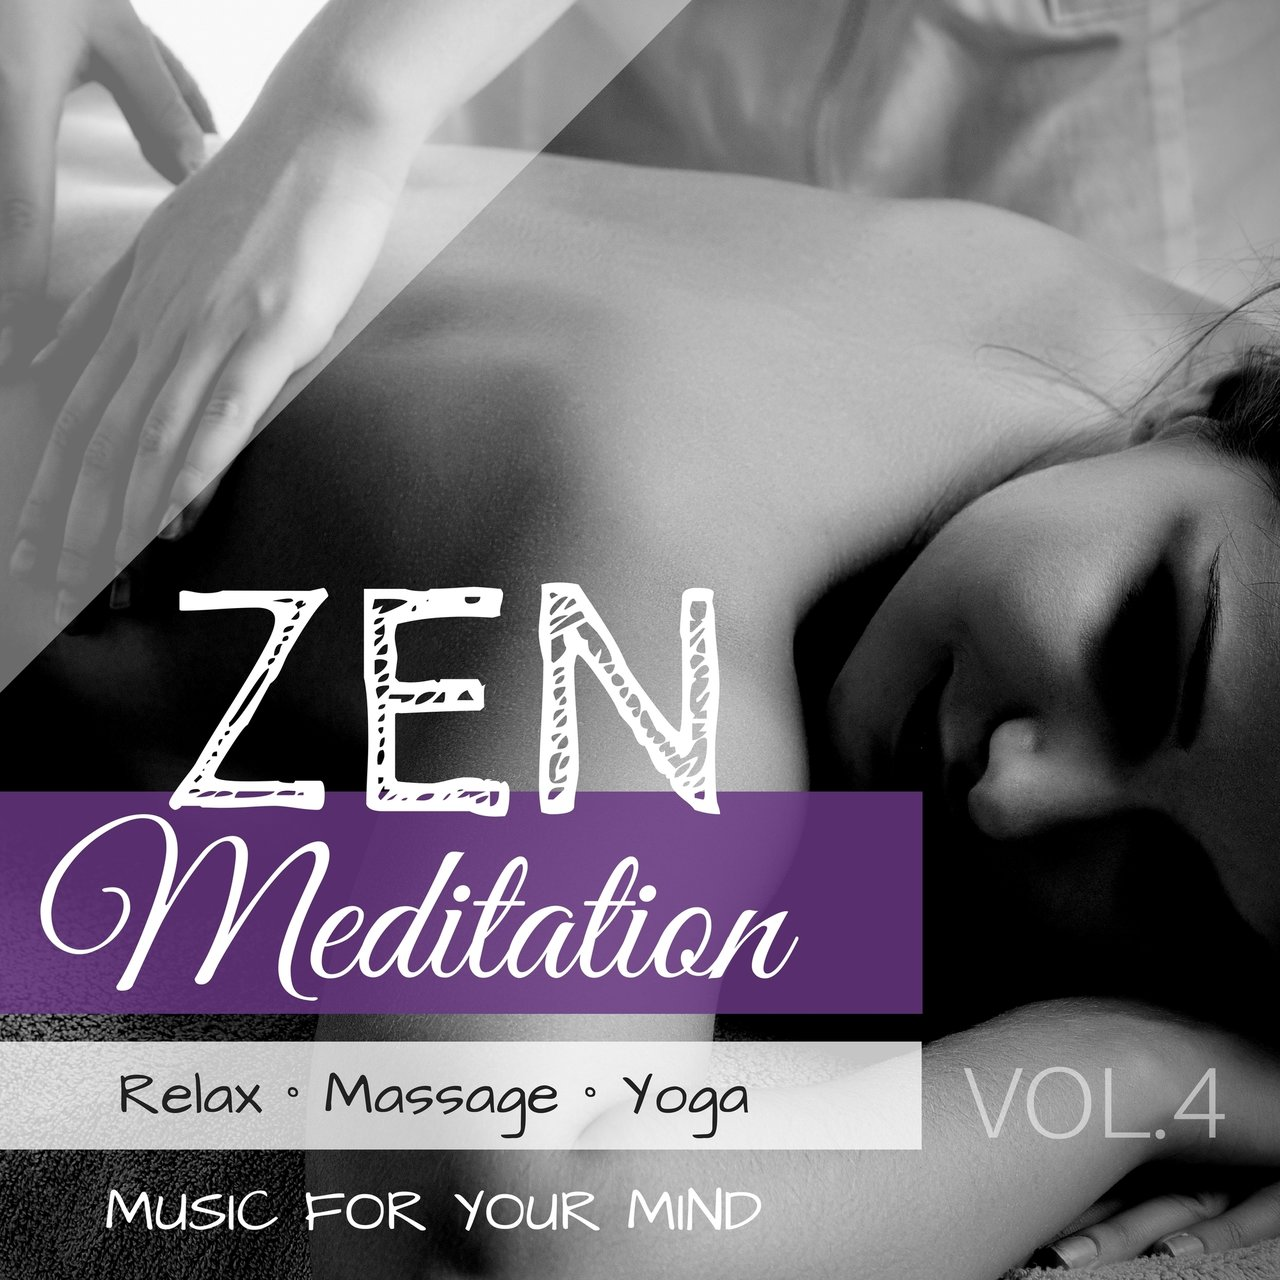 Zen Meditation: Relax, Massage, Yoga Music for Your Mind, Vol. 4